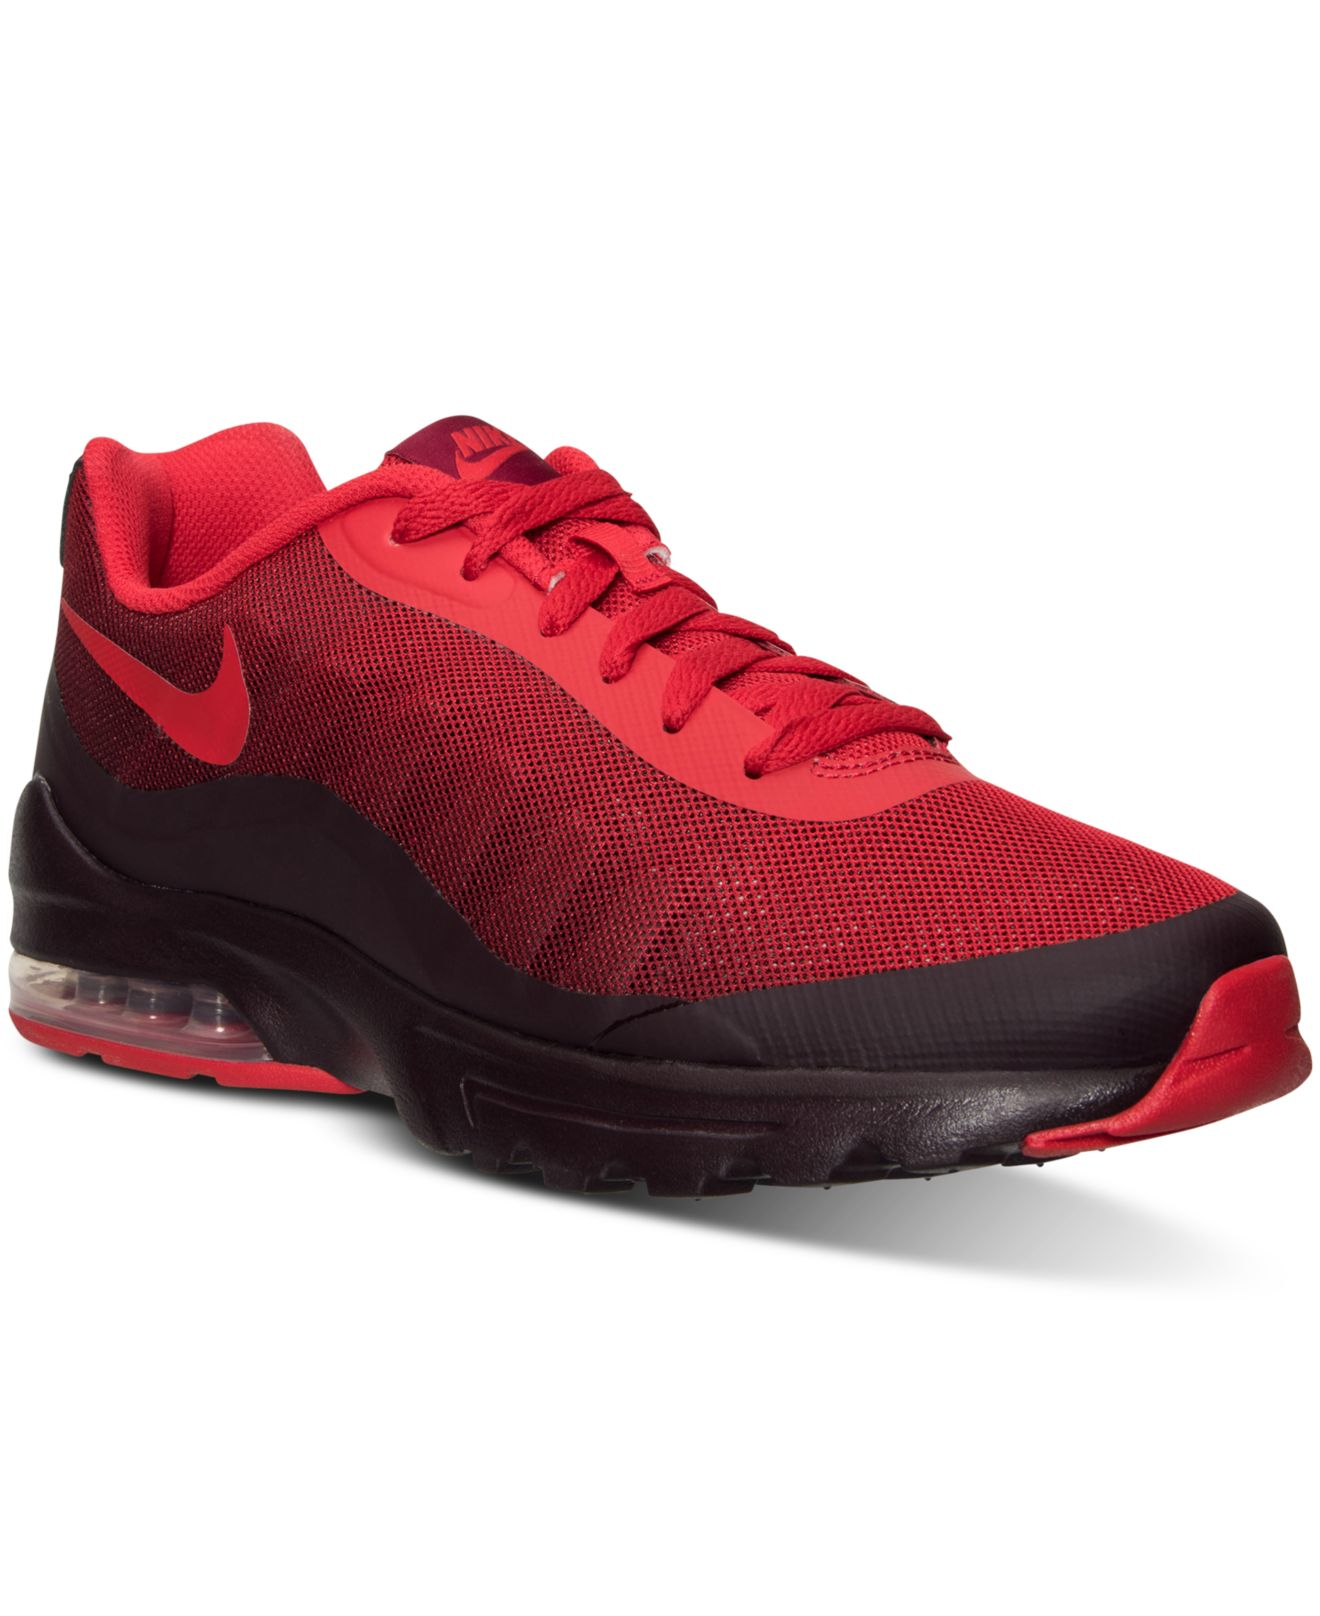 low priced 84158 f9f91 Nike Men s Air Max Invigor Print Running Sneakers From Finish Line ...